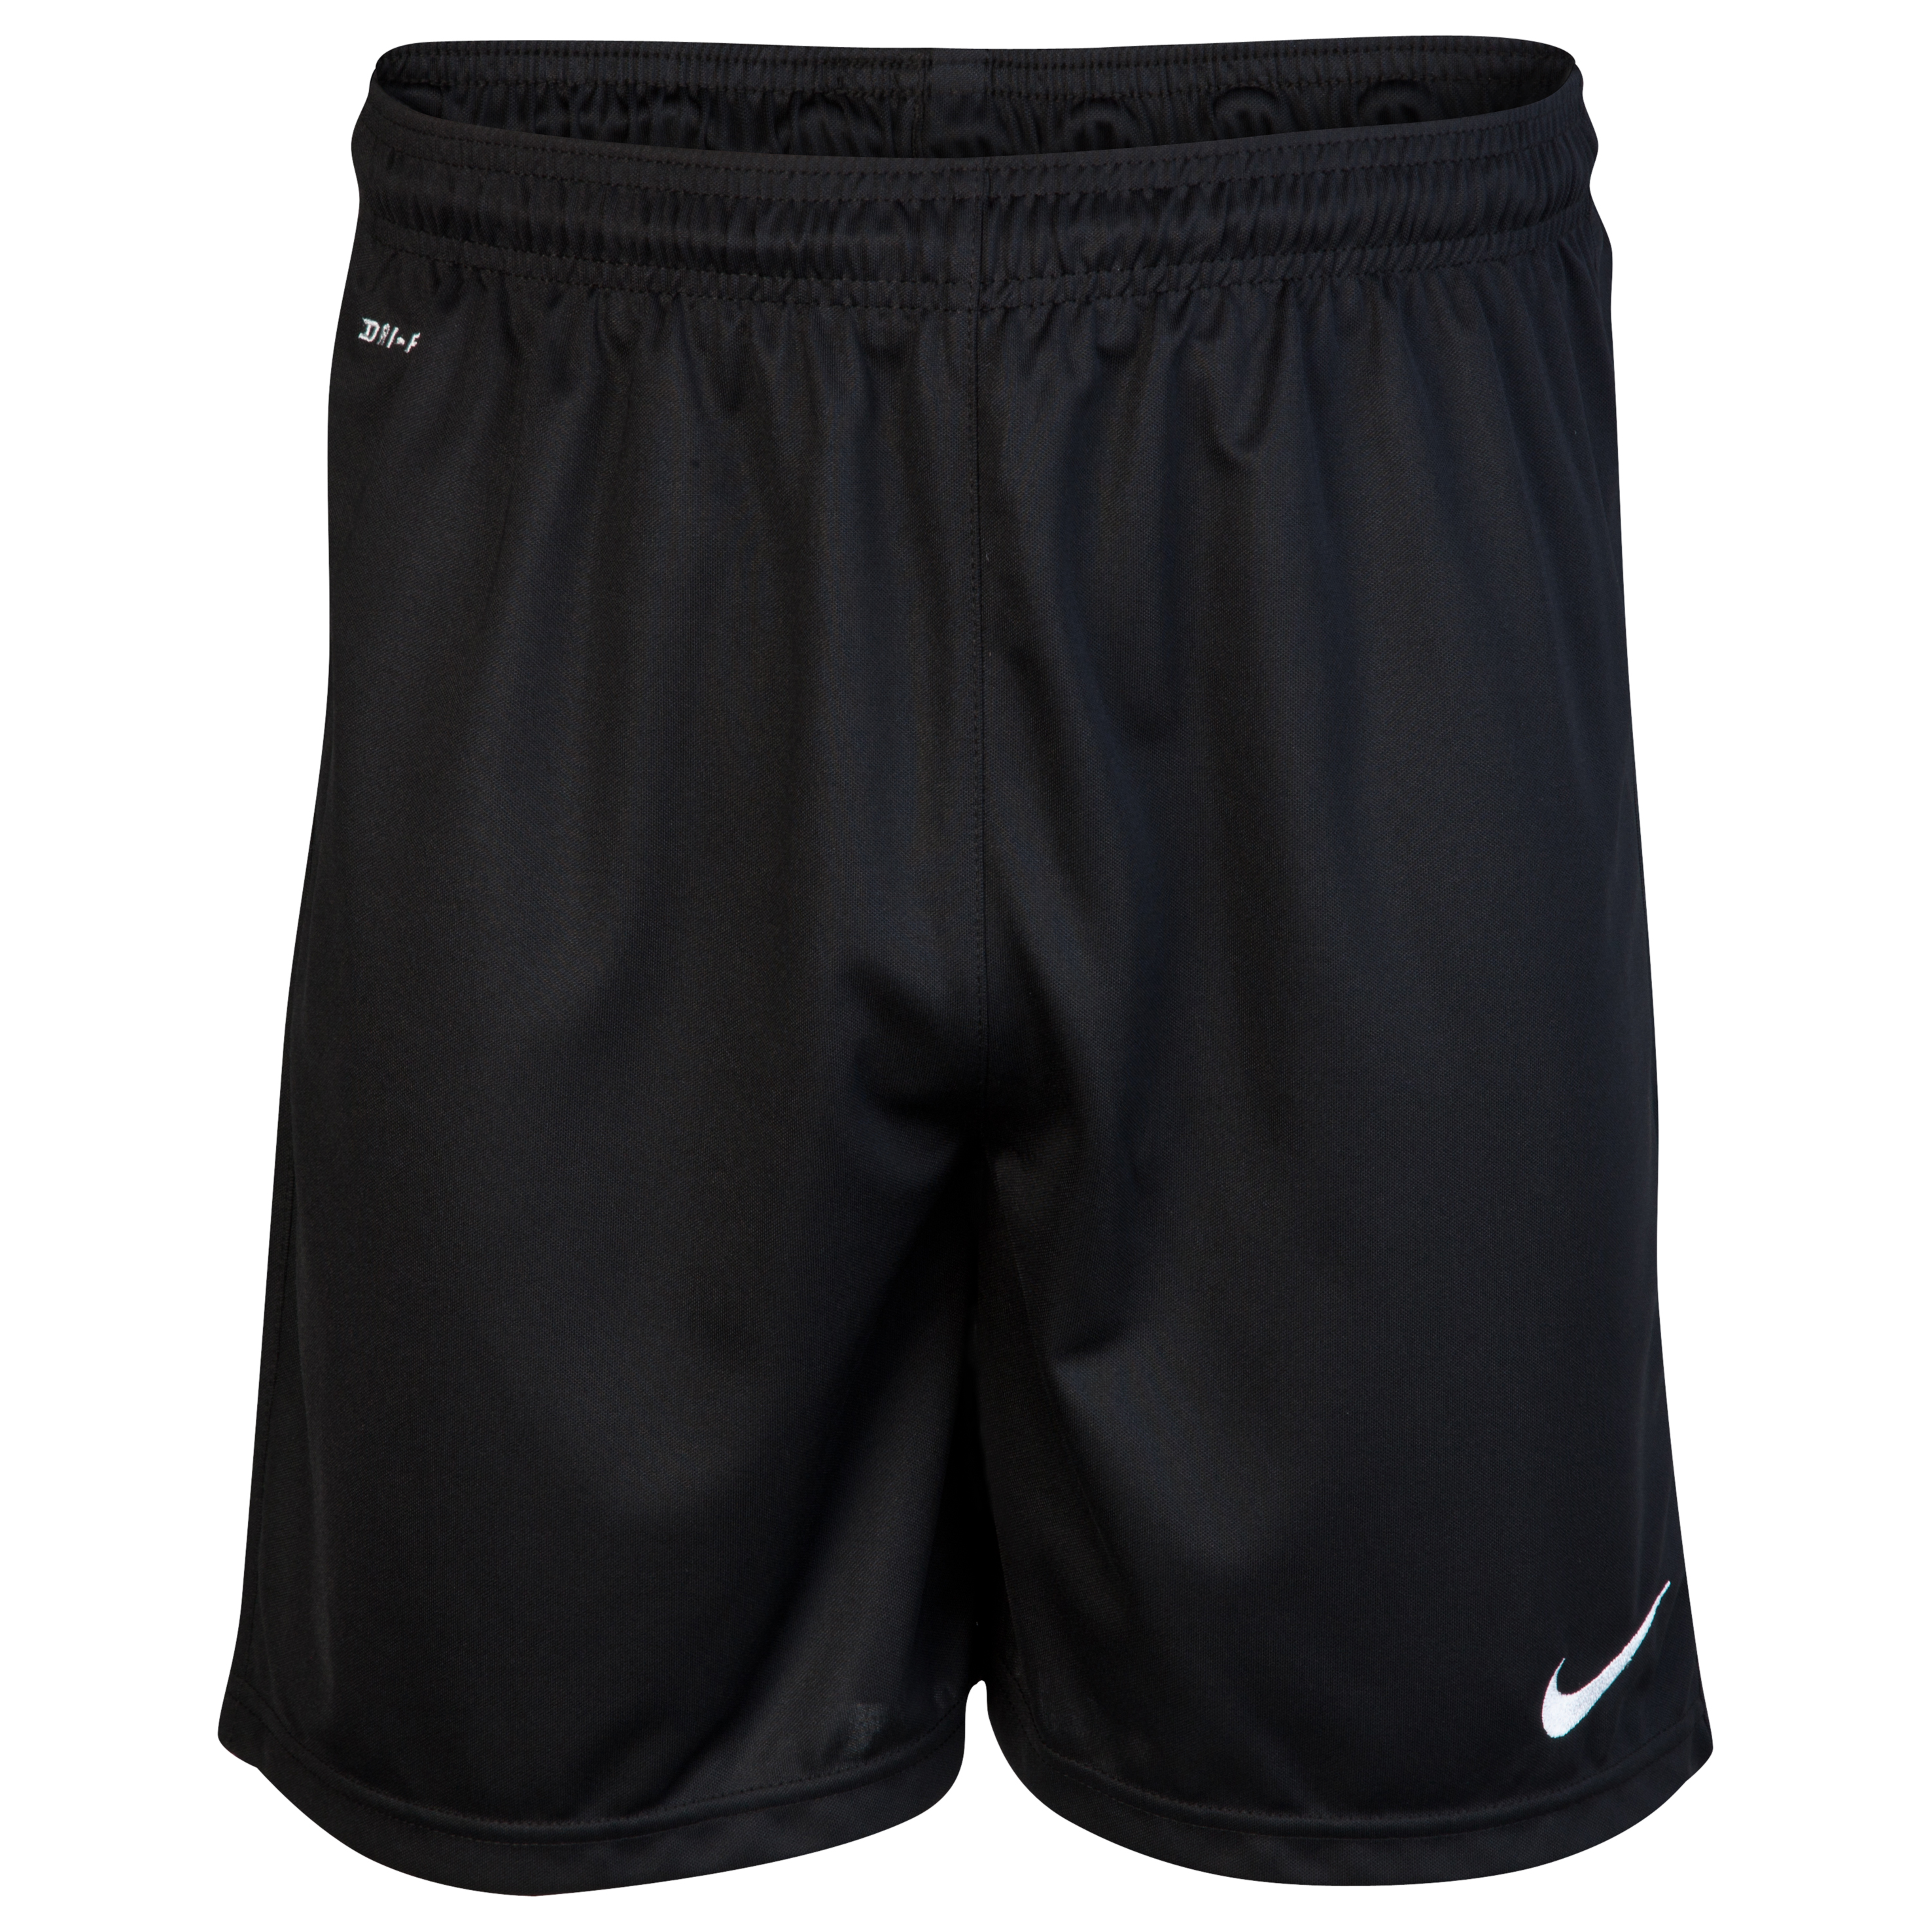 Celtic Home Goalkeeper Shorts 2012/13 -  Youths